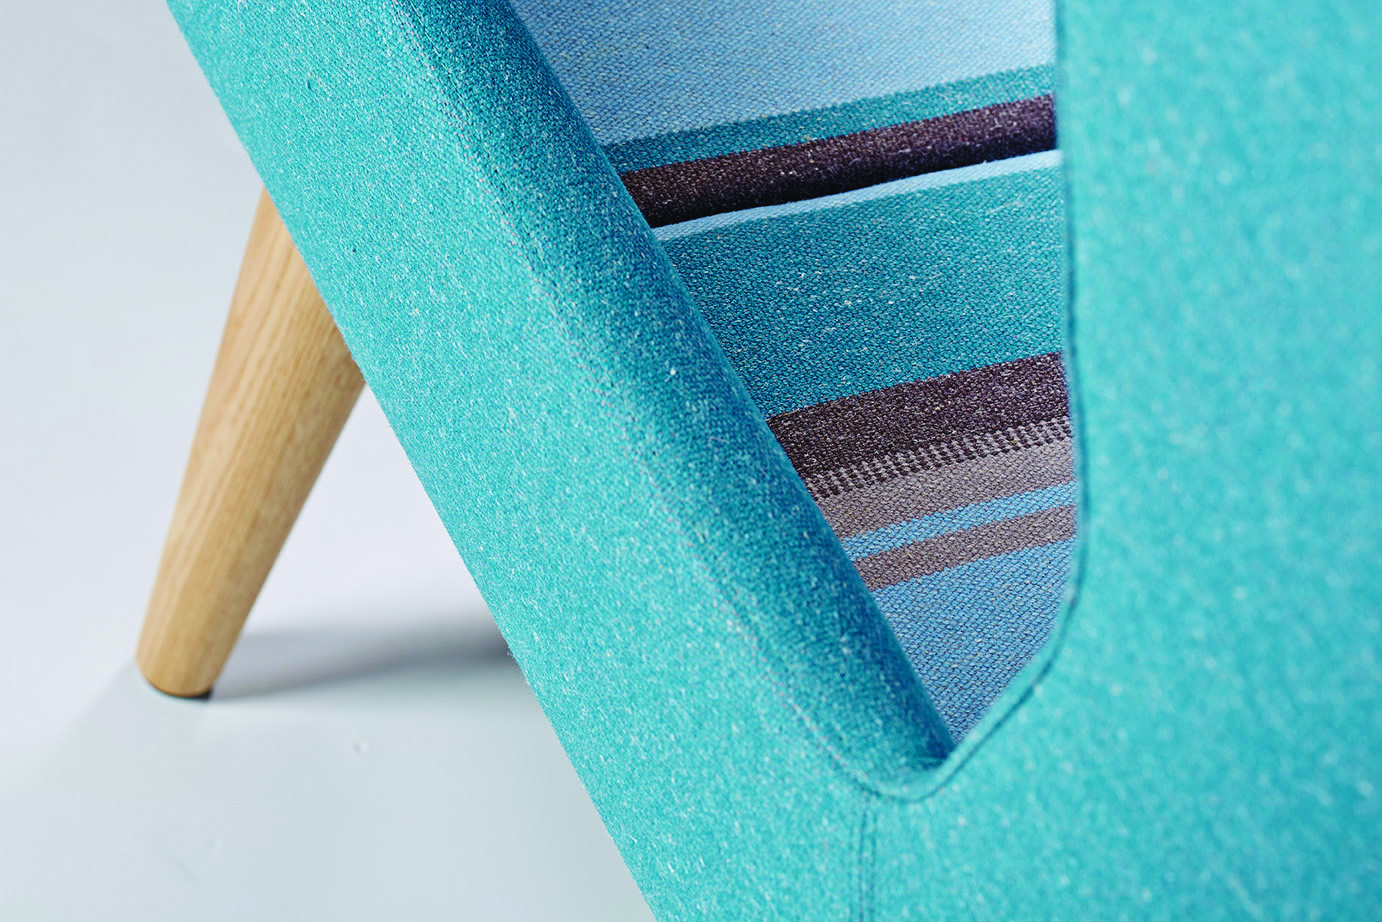 CAMIRA FABRICS (PRODUCT SHOOT 02.04.2014)